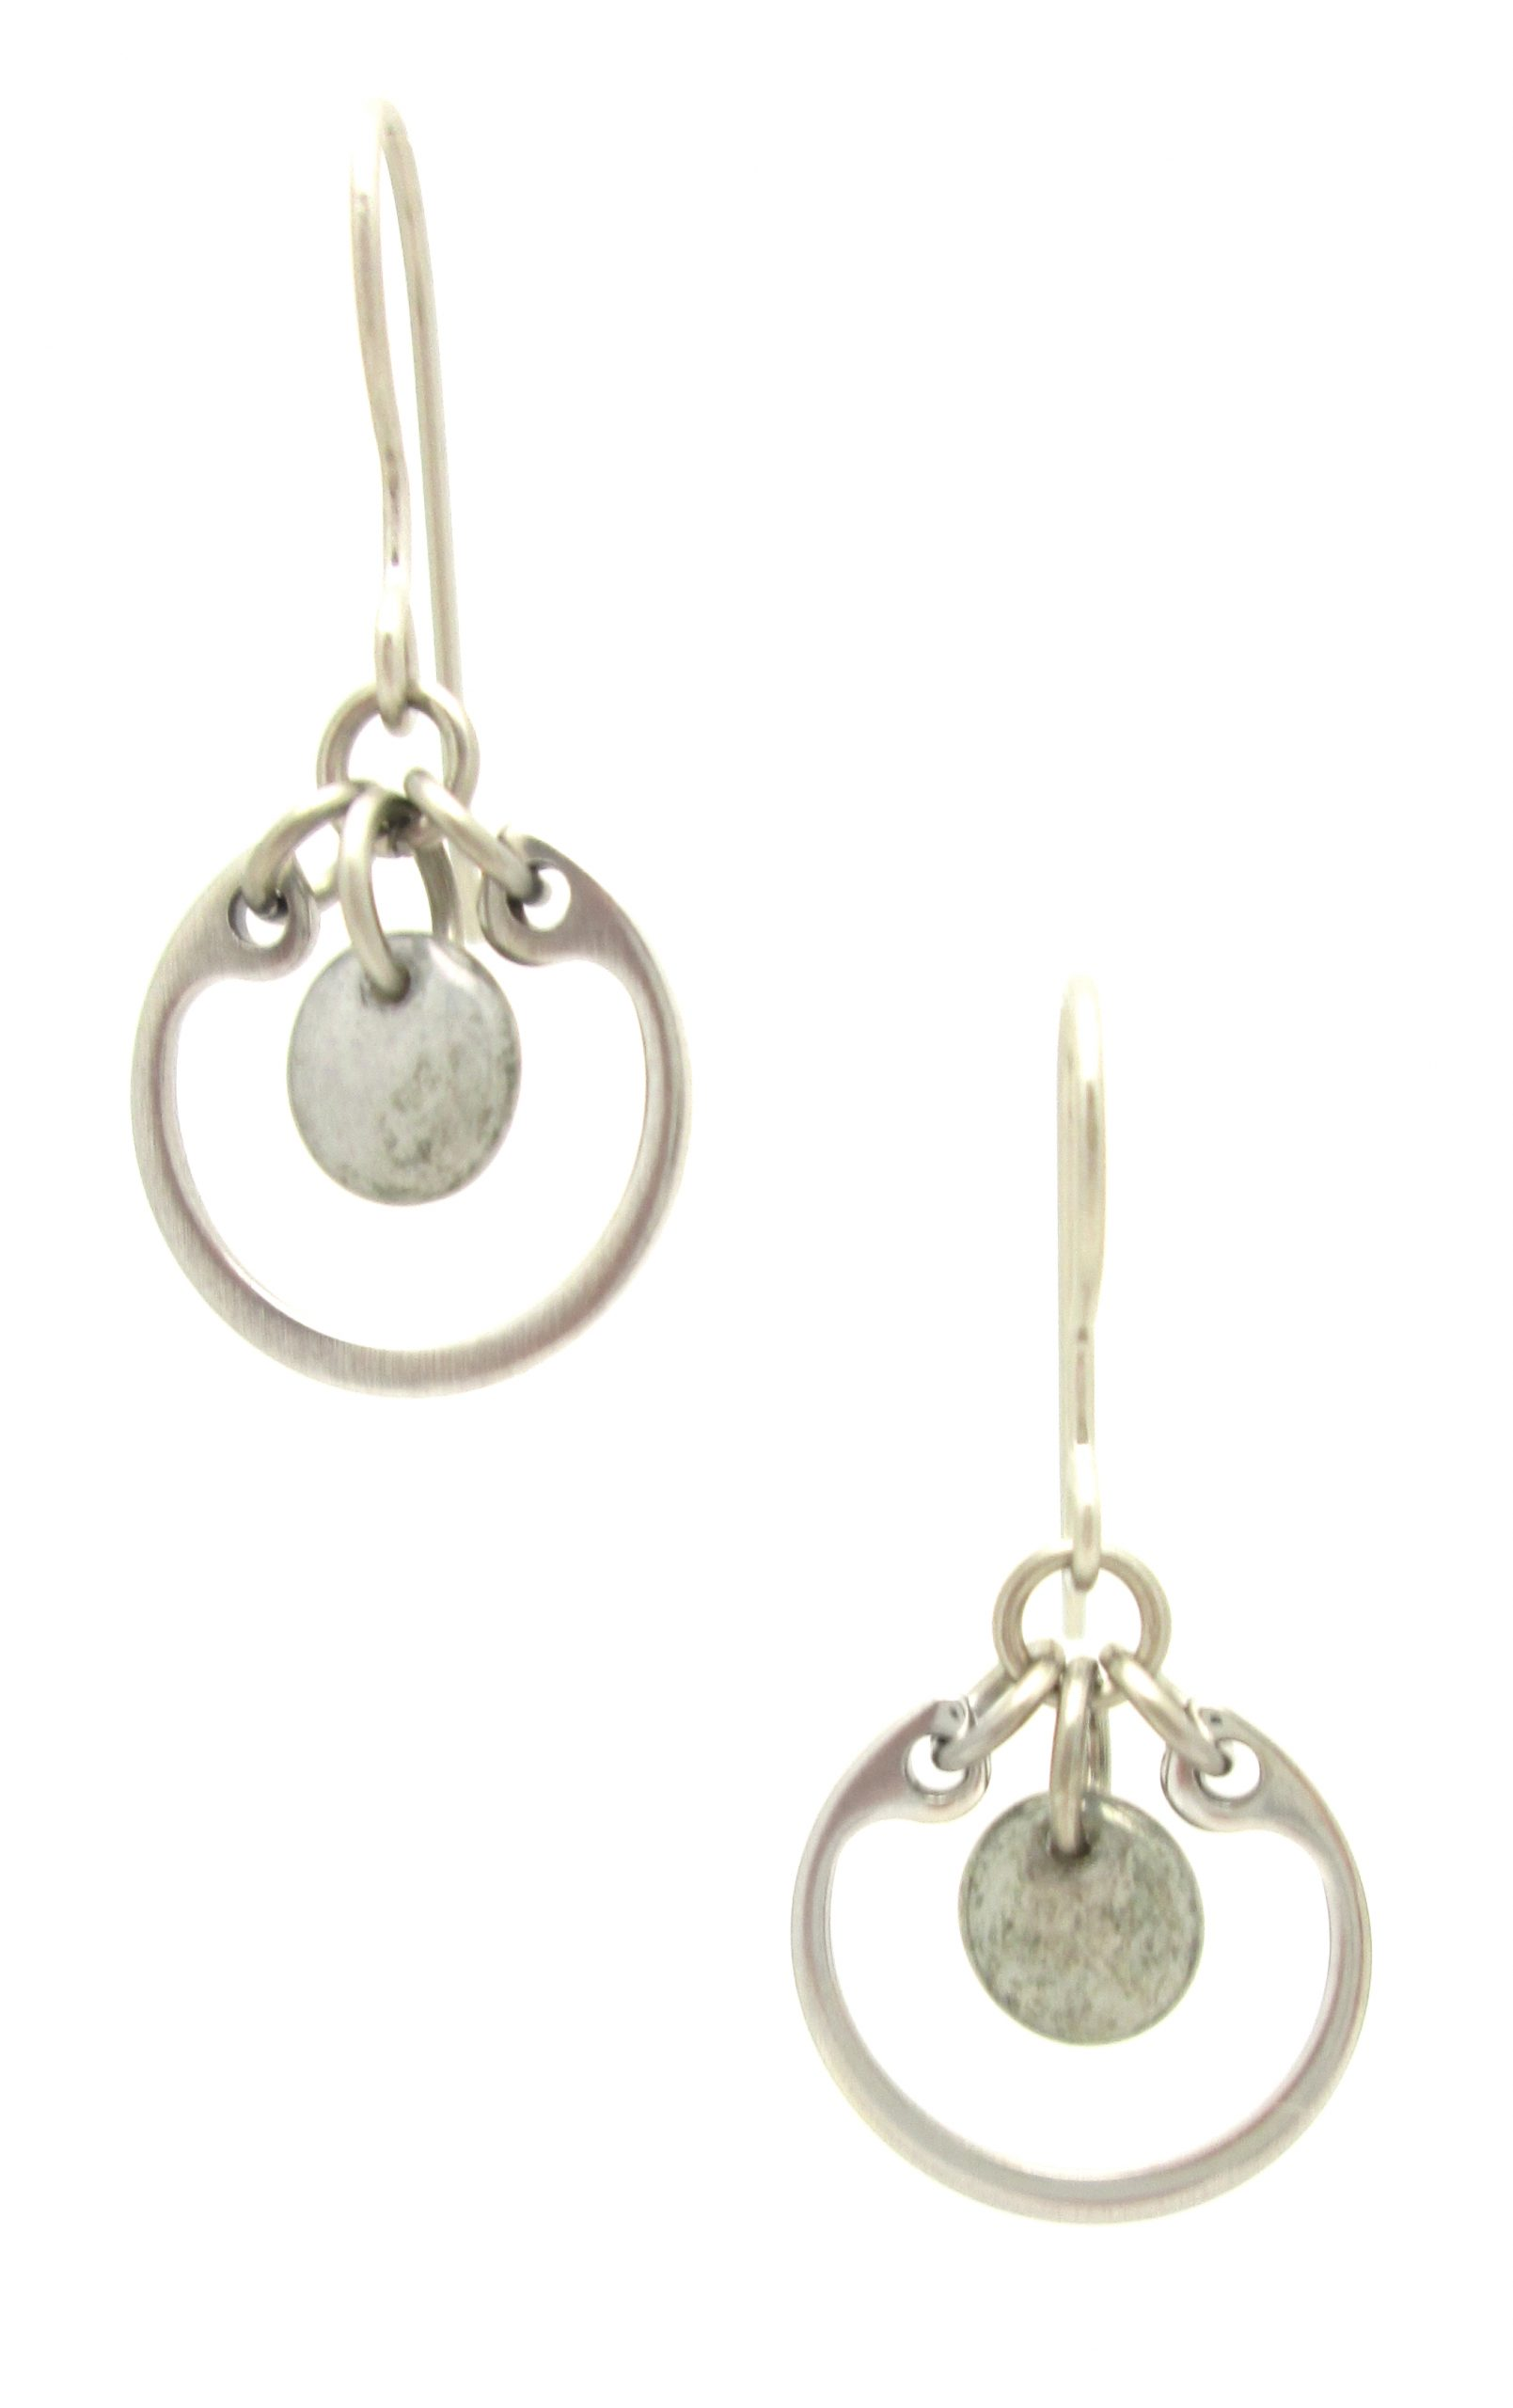 photo of Wraptillion's Small Circle Earrings in gray, a modern dangle silver-tone earring with french hooks